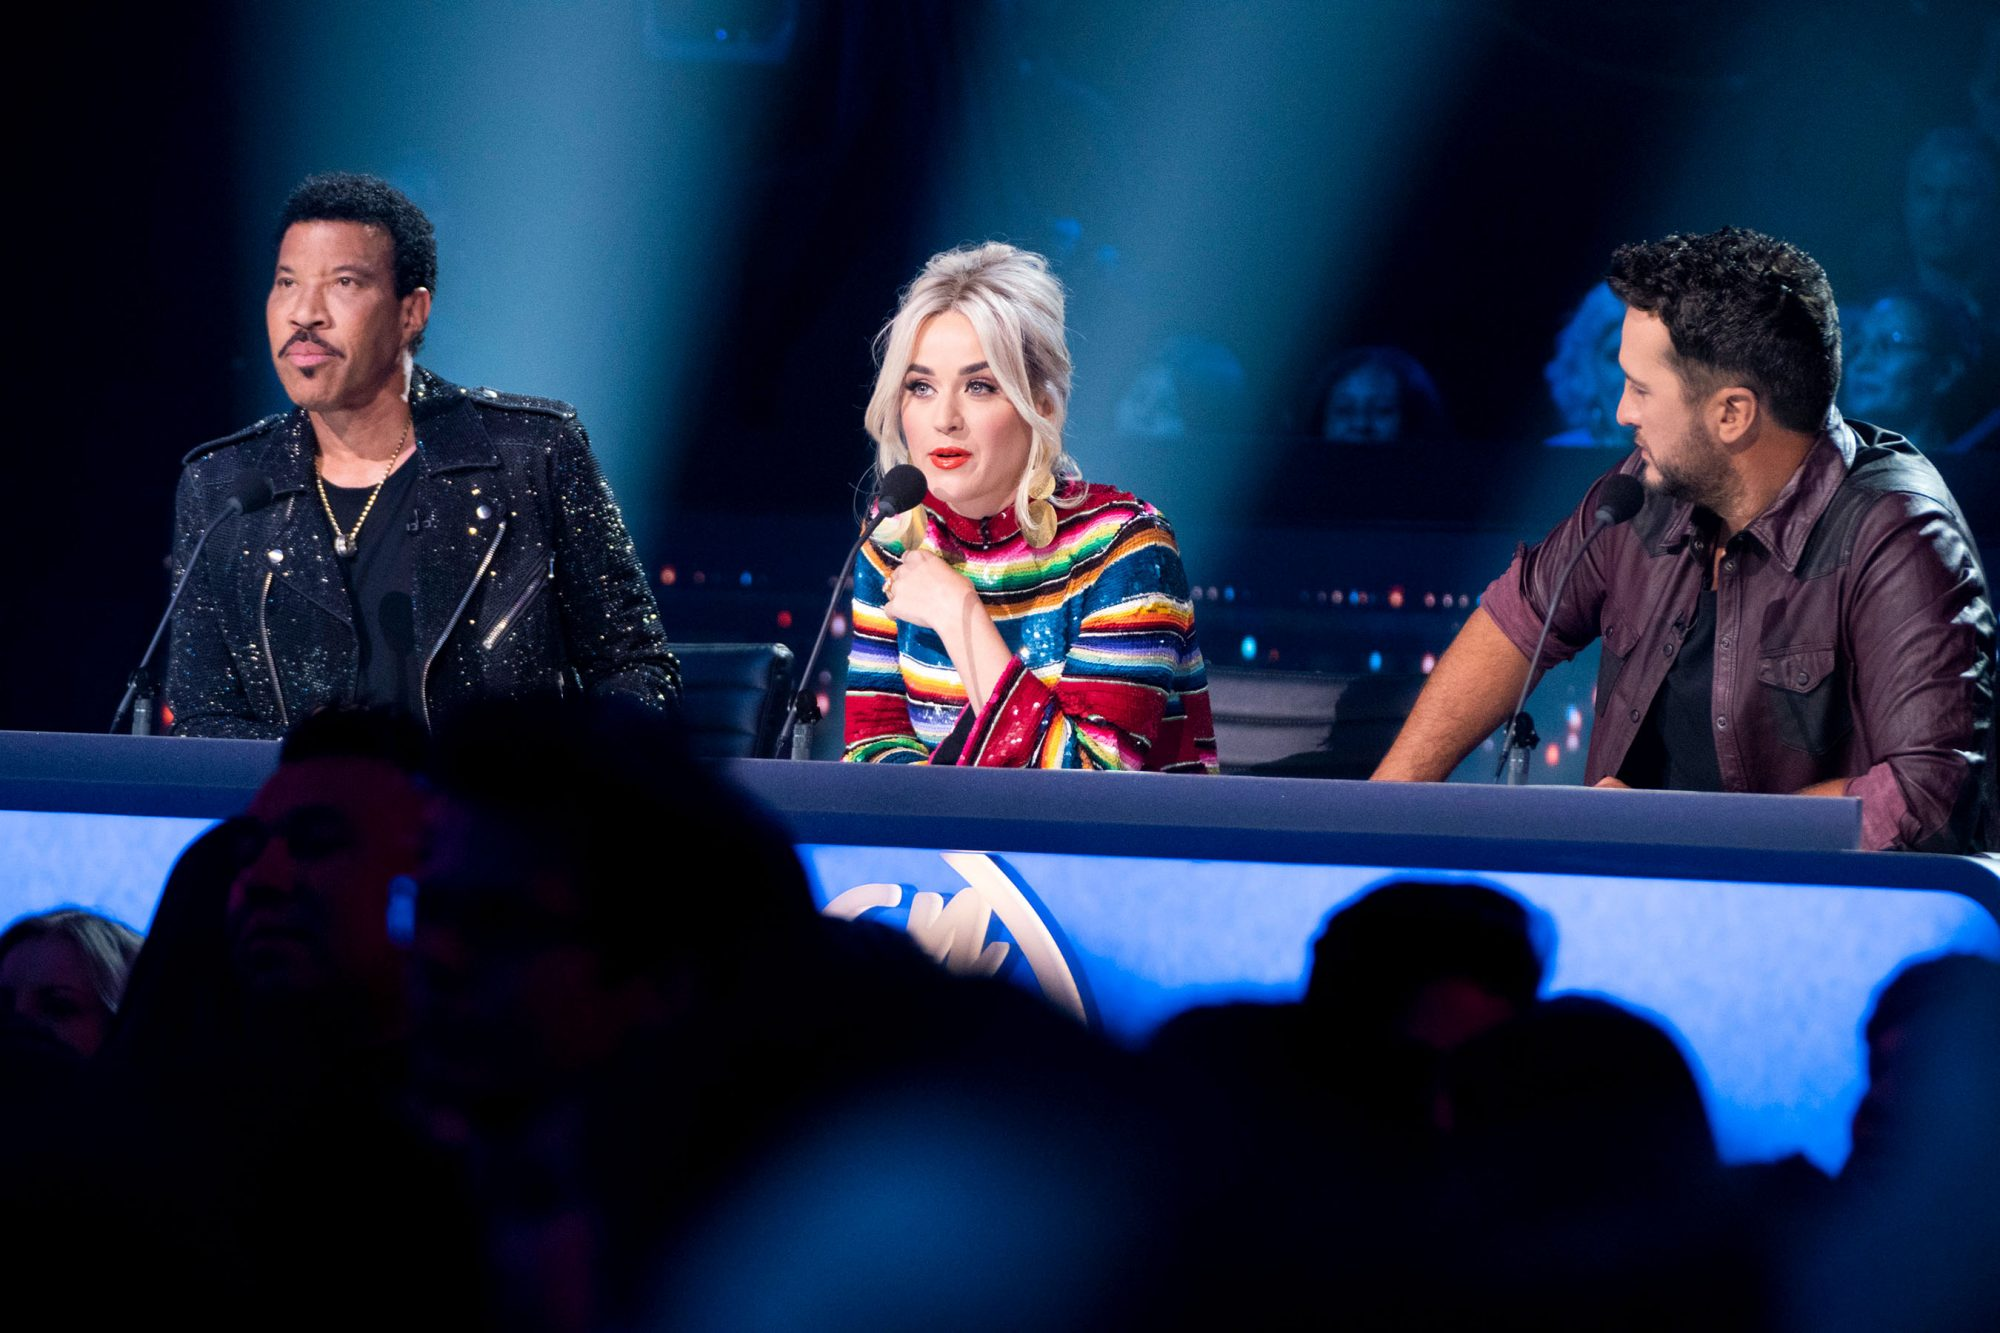 American Idol Season 2, Episode 16